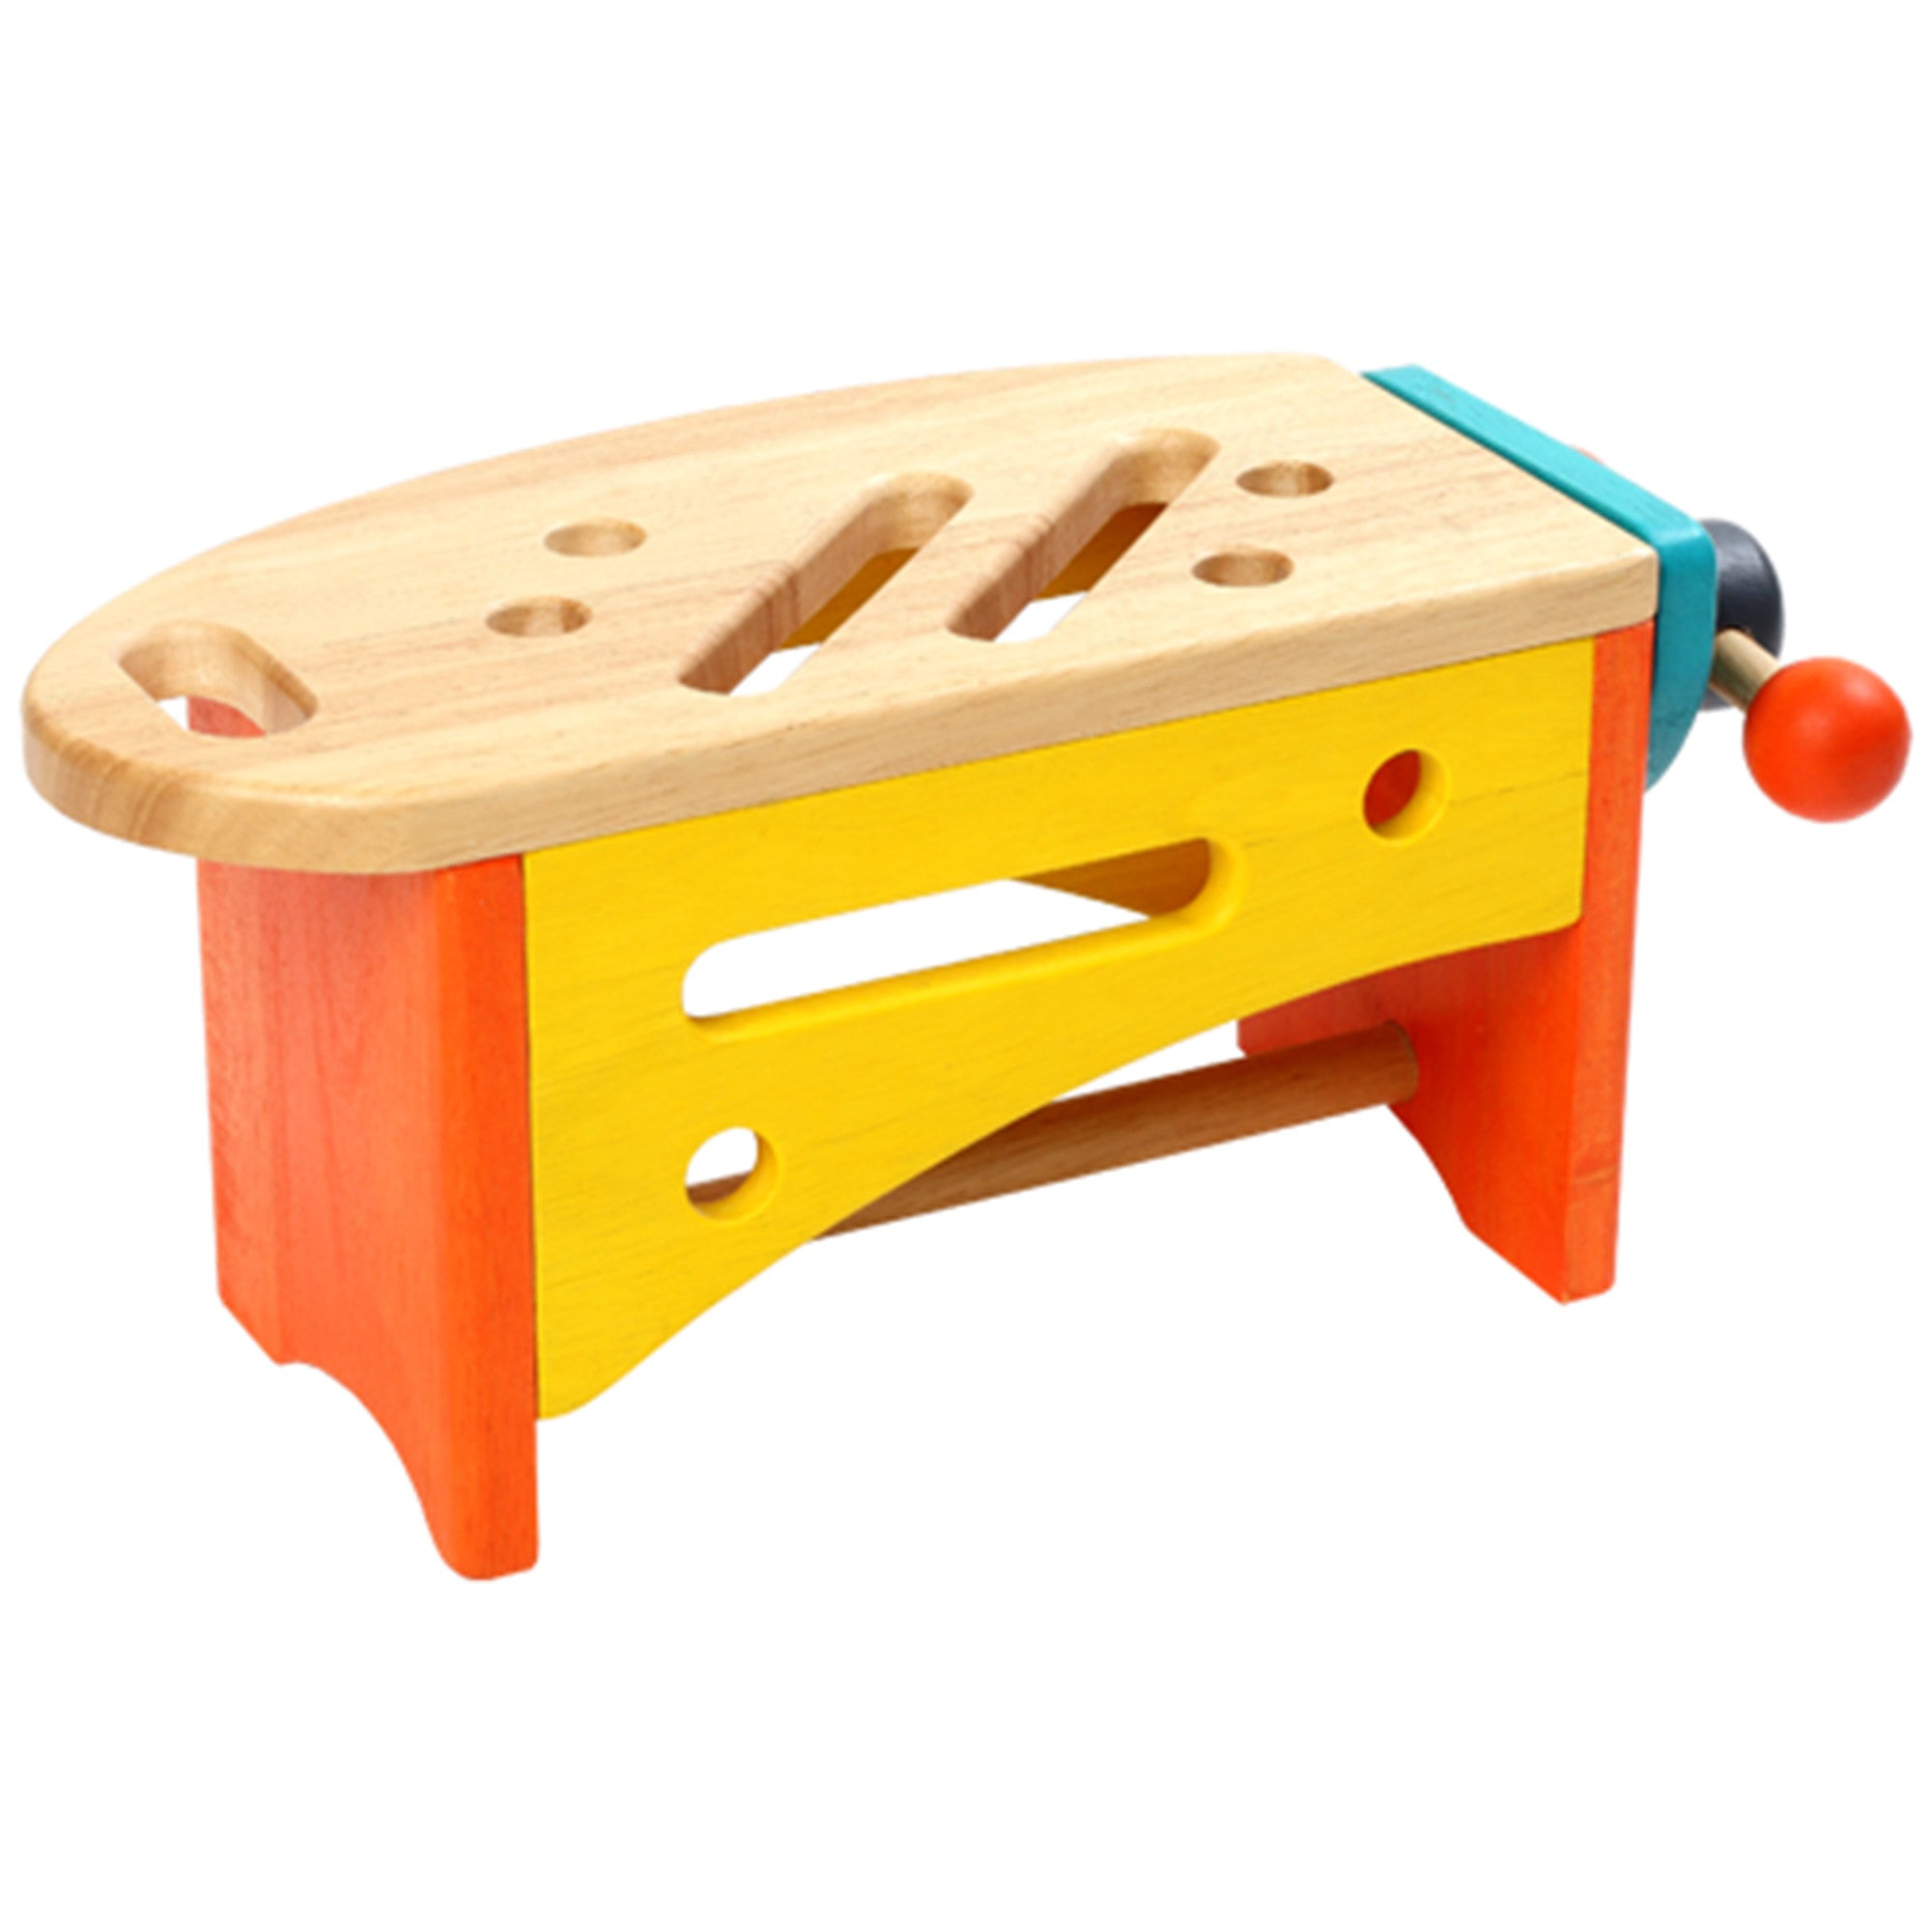 Wooden Toy Tool Set Tool Kit Voila Toy Tools at Little Earth Nest Eco Shop